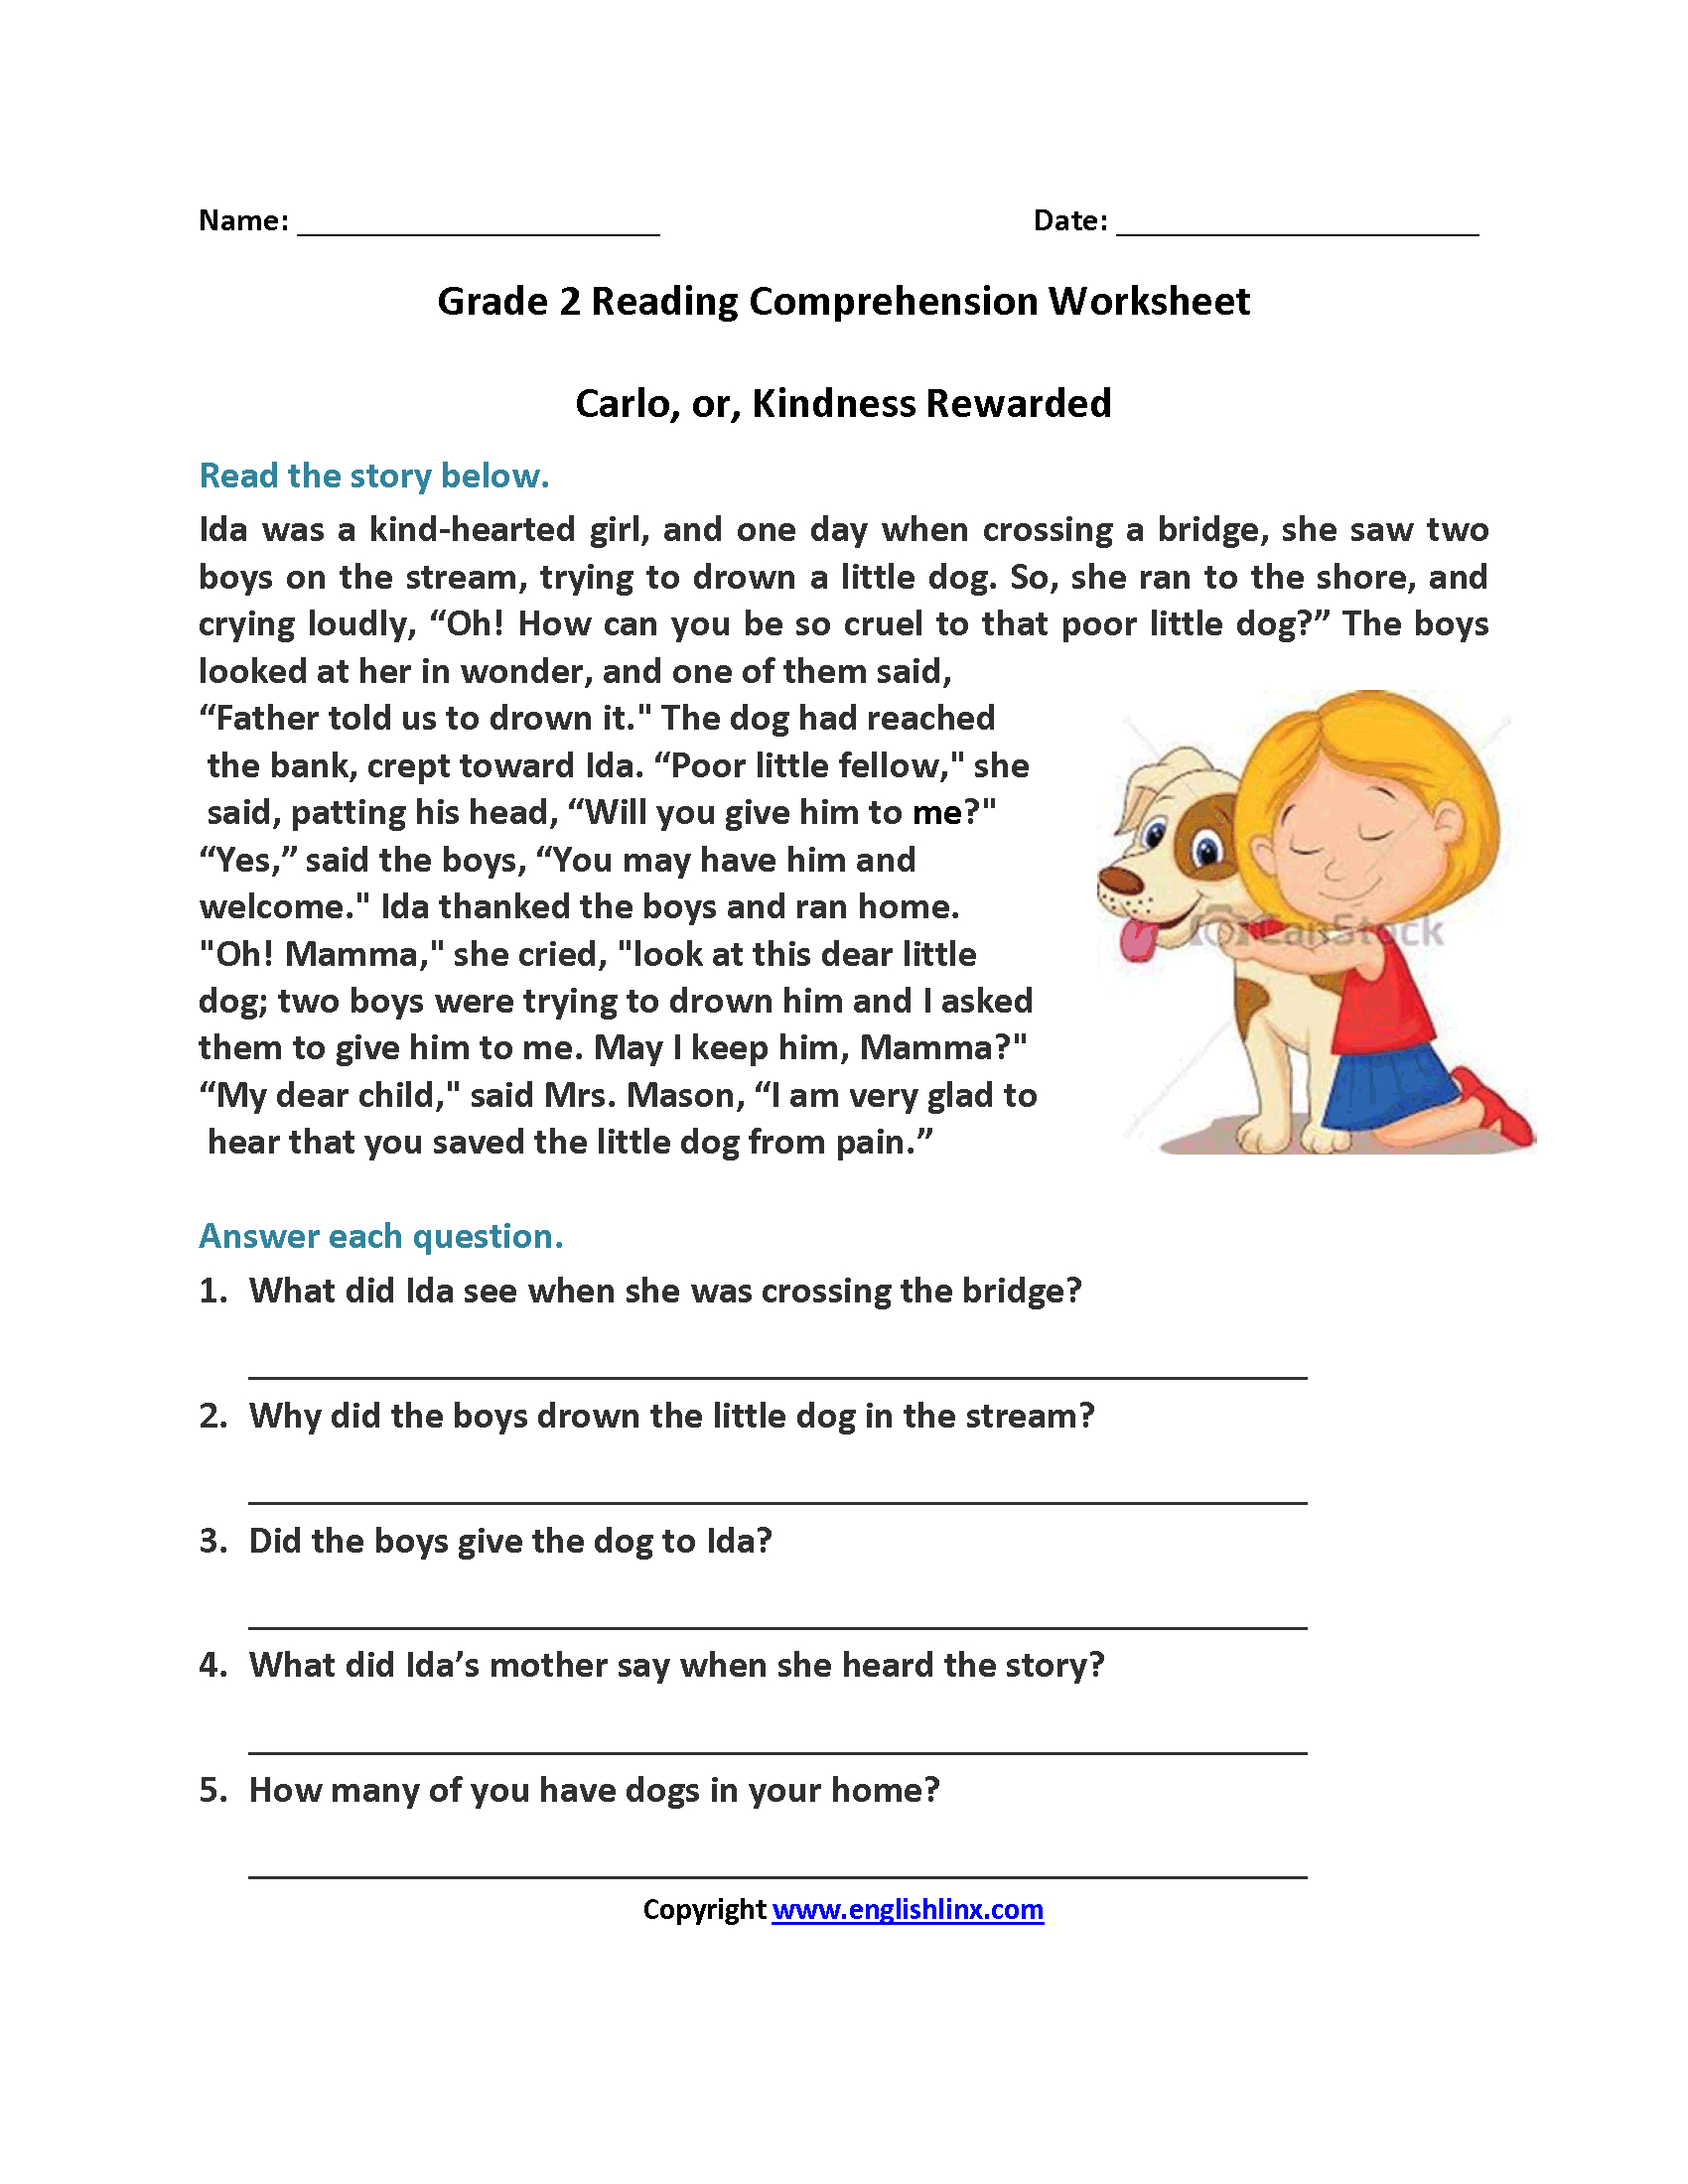 Carlo Or Kindness Rewarded Second Grade Reading Worksheets | Reading - Free Printable 3Rd Grade Reading Worksheets